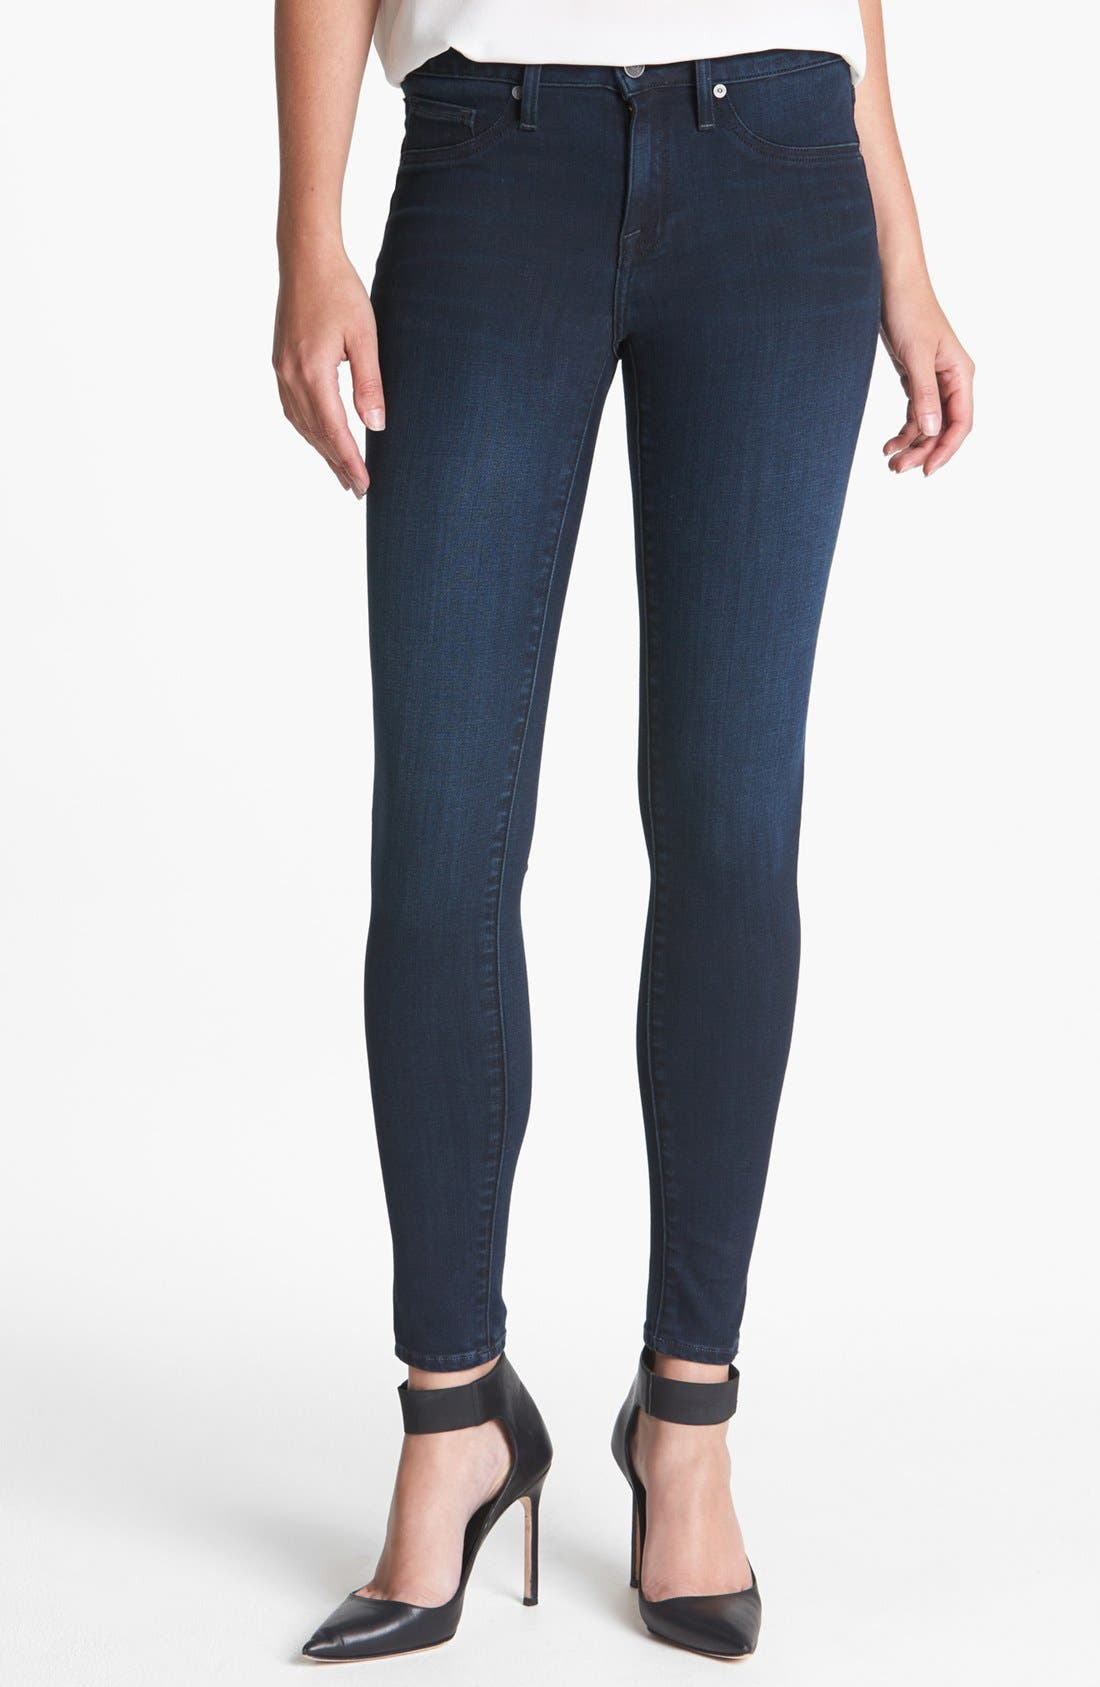 Alternate Image 1 Selected - Joie Ankle Stretch Skinny Jeans (Neptune)